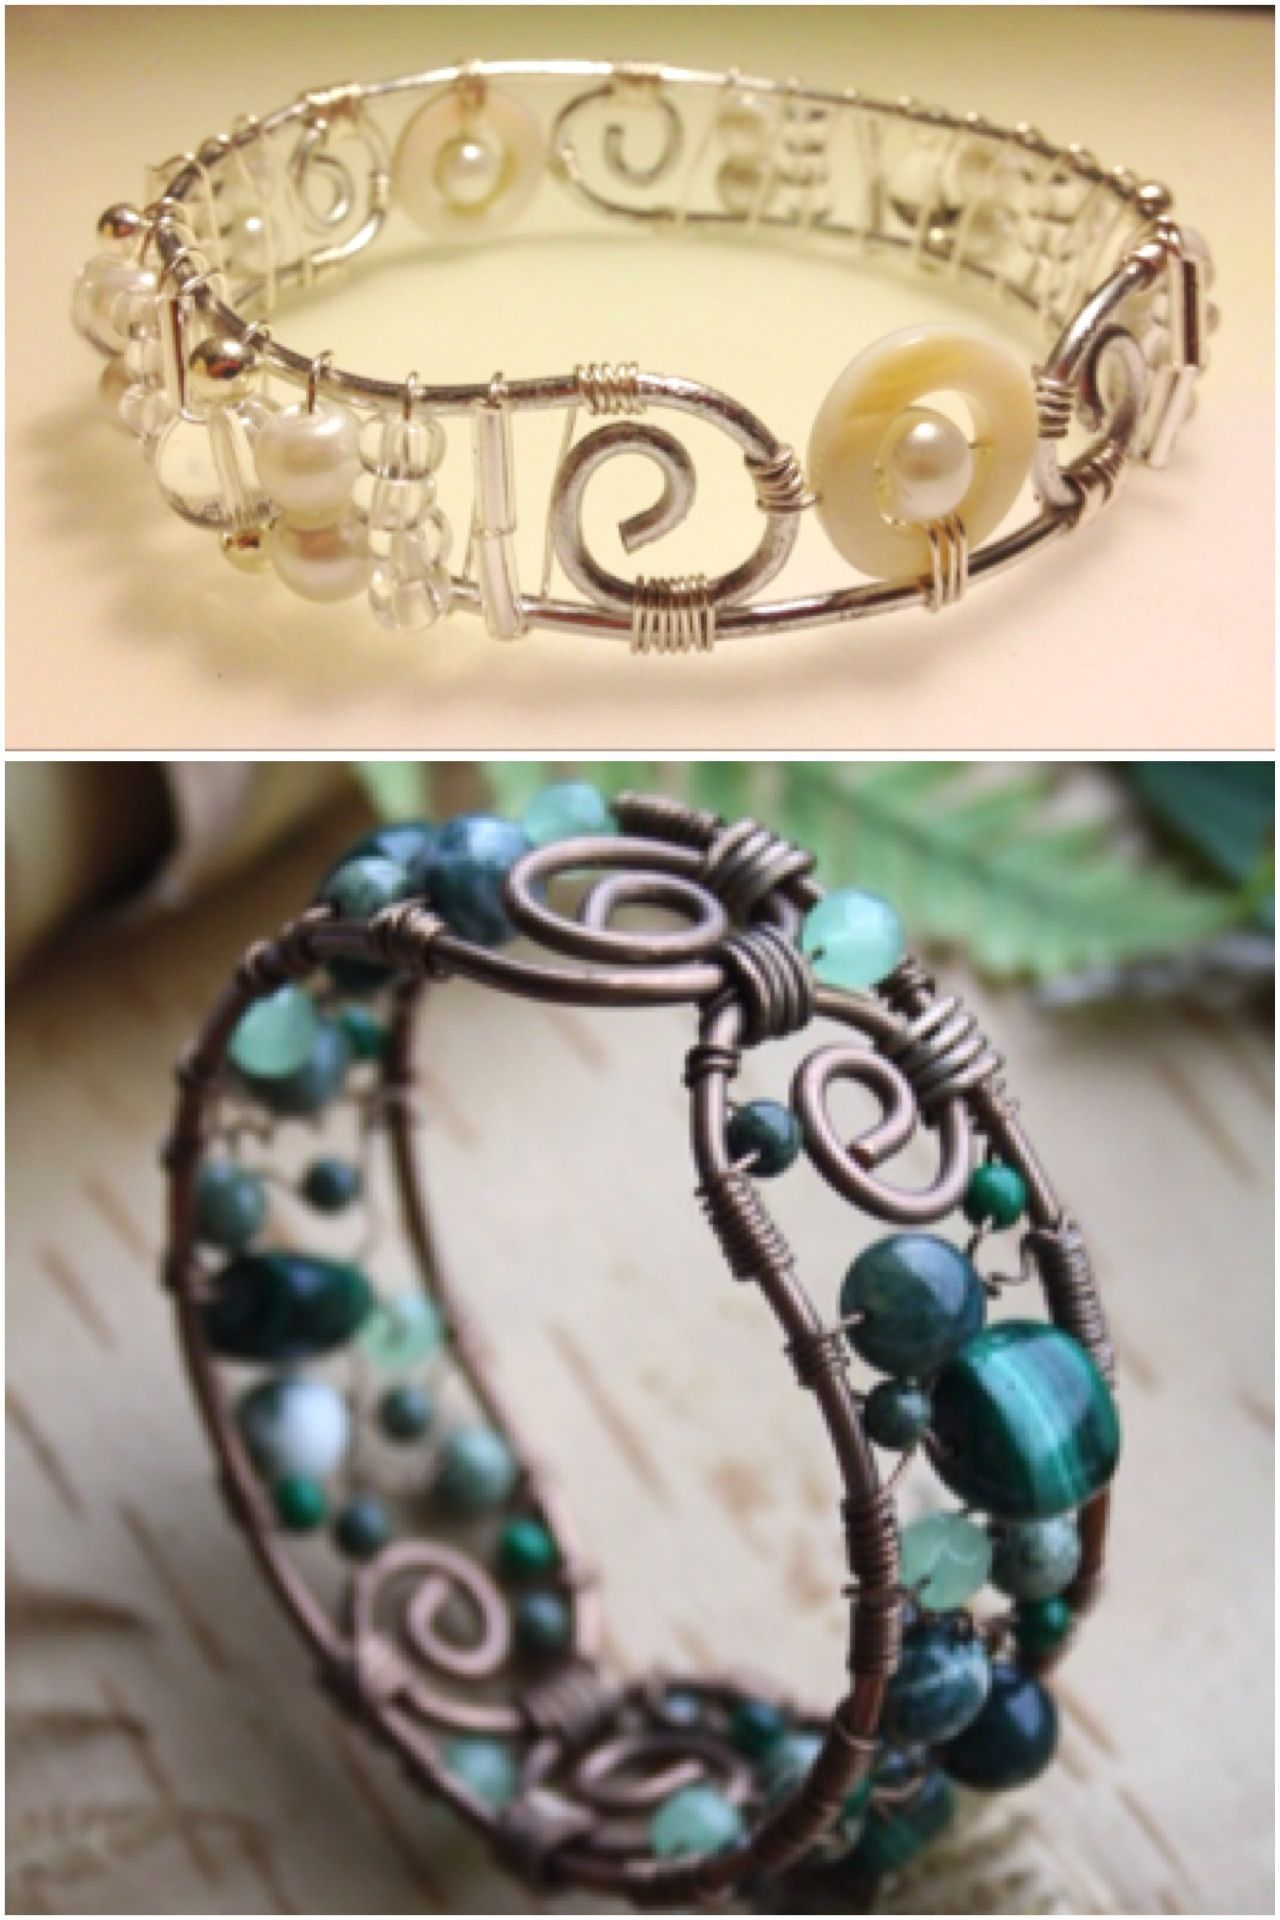 Diy Wire Wred Bracelet Lovely Cool How The Mood Changes So Much By Changing